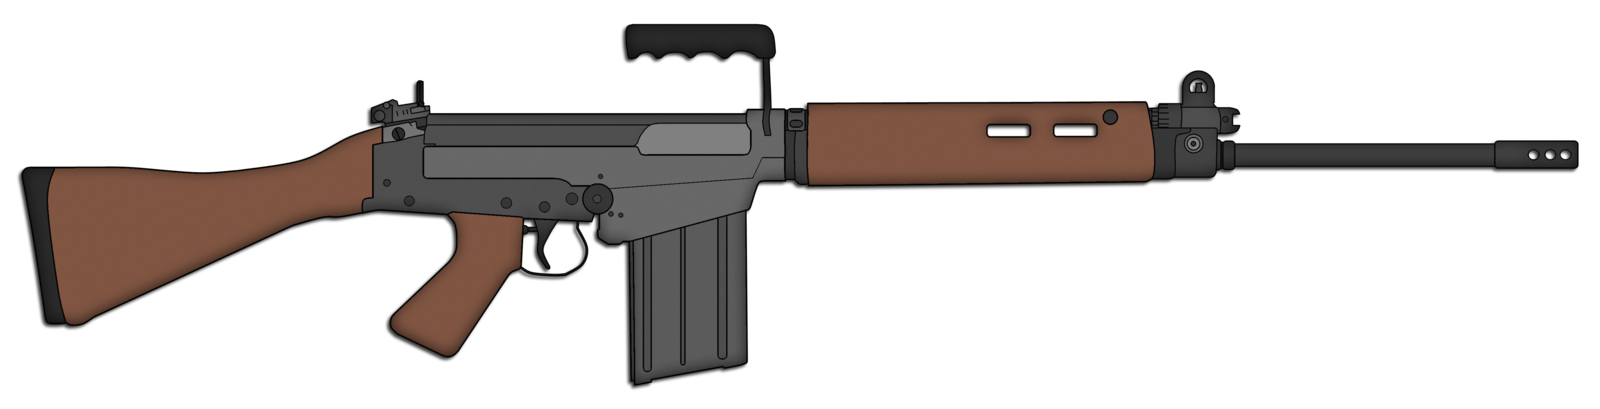 Fal rifle png. Fn assault by skorpion